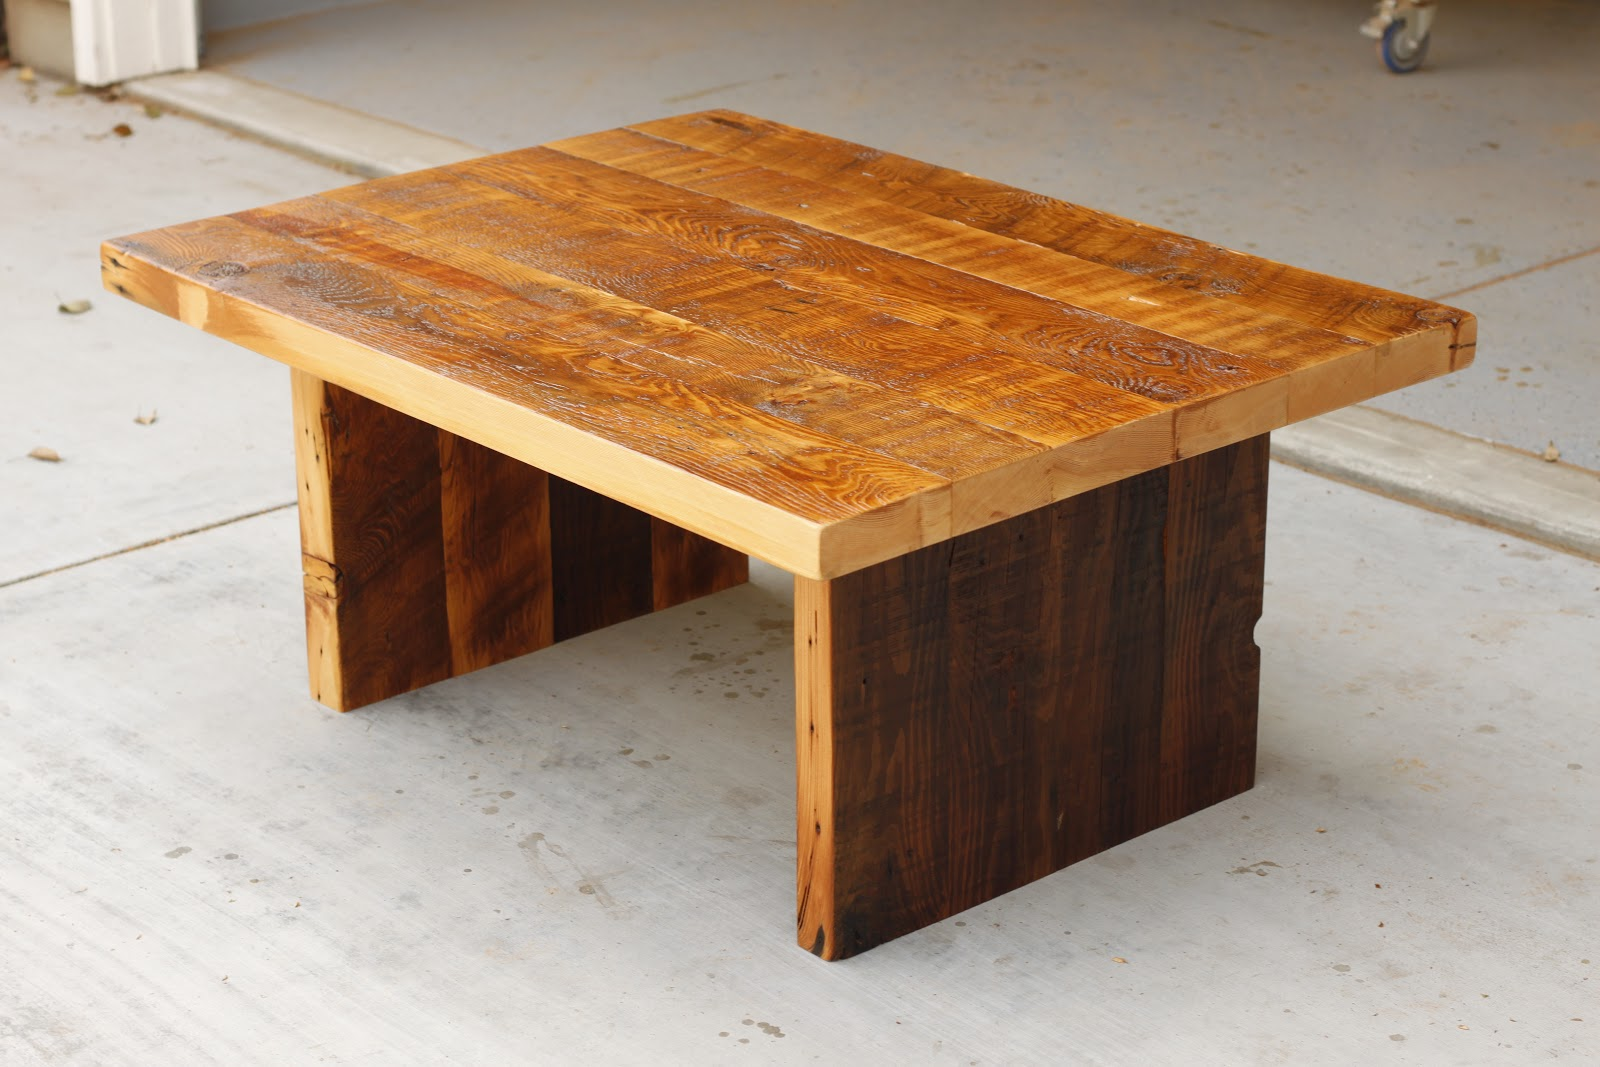 Reclaimed Wood Furniture: Set Of 3